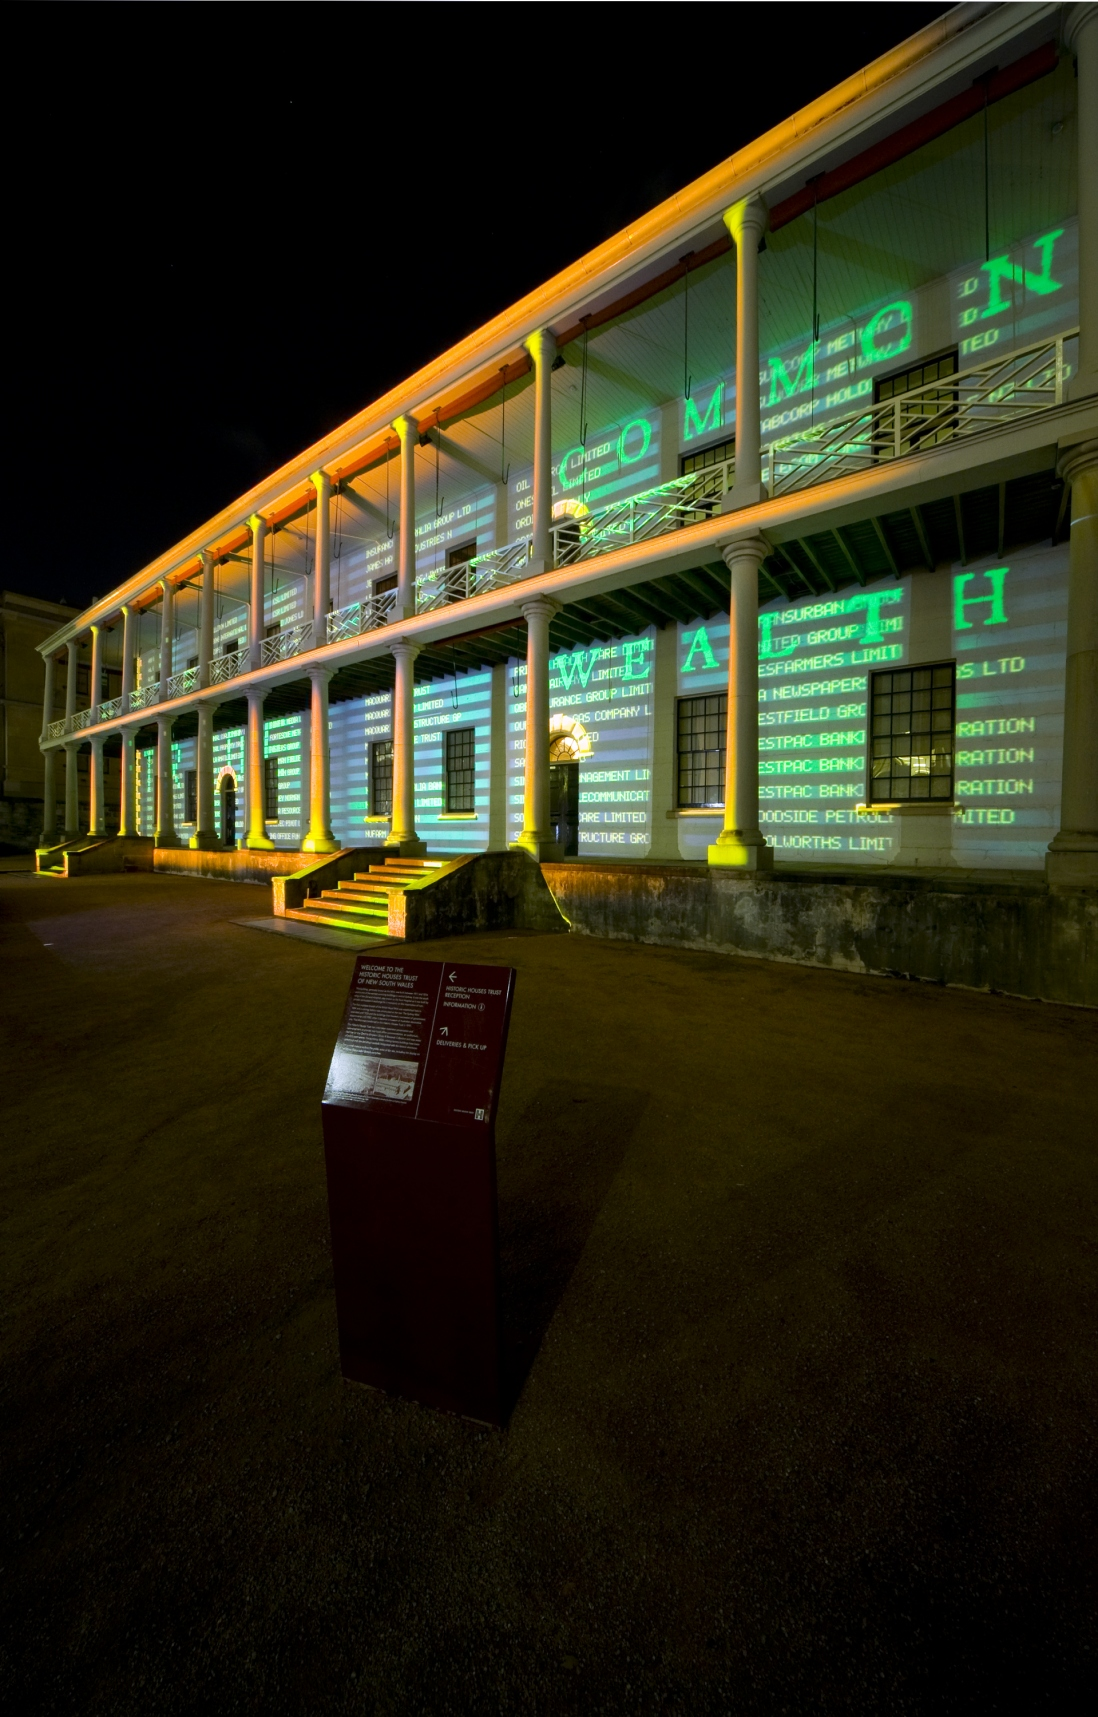 The facade of the Mint building covered in projected coloured lights